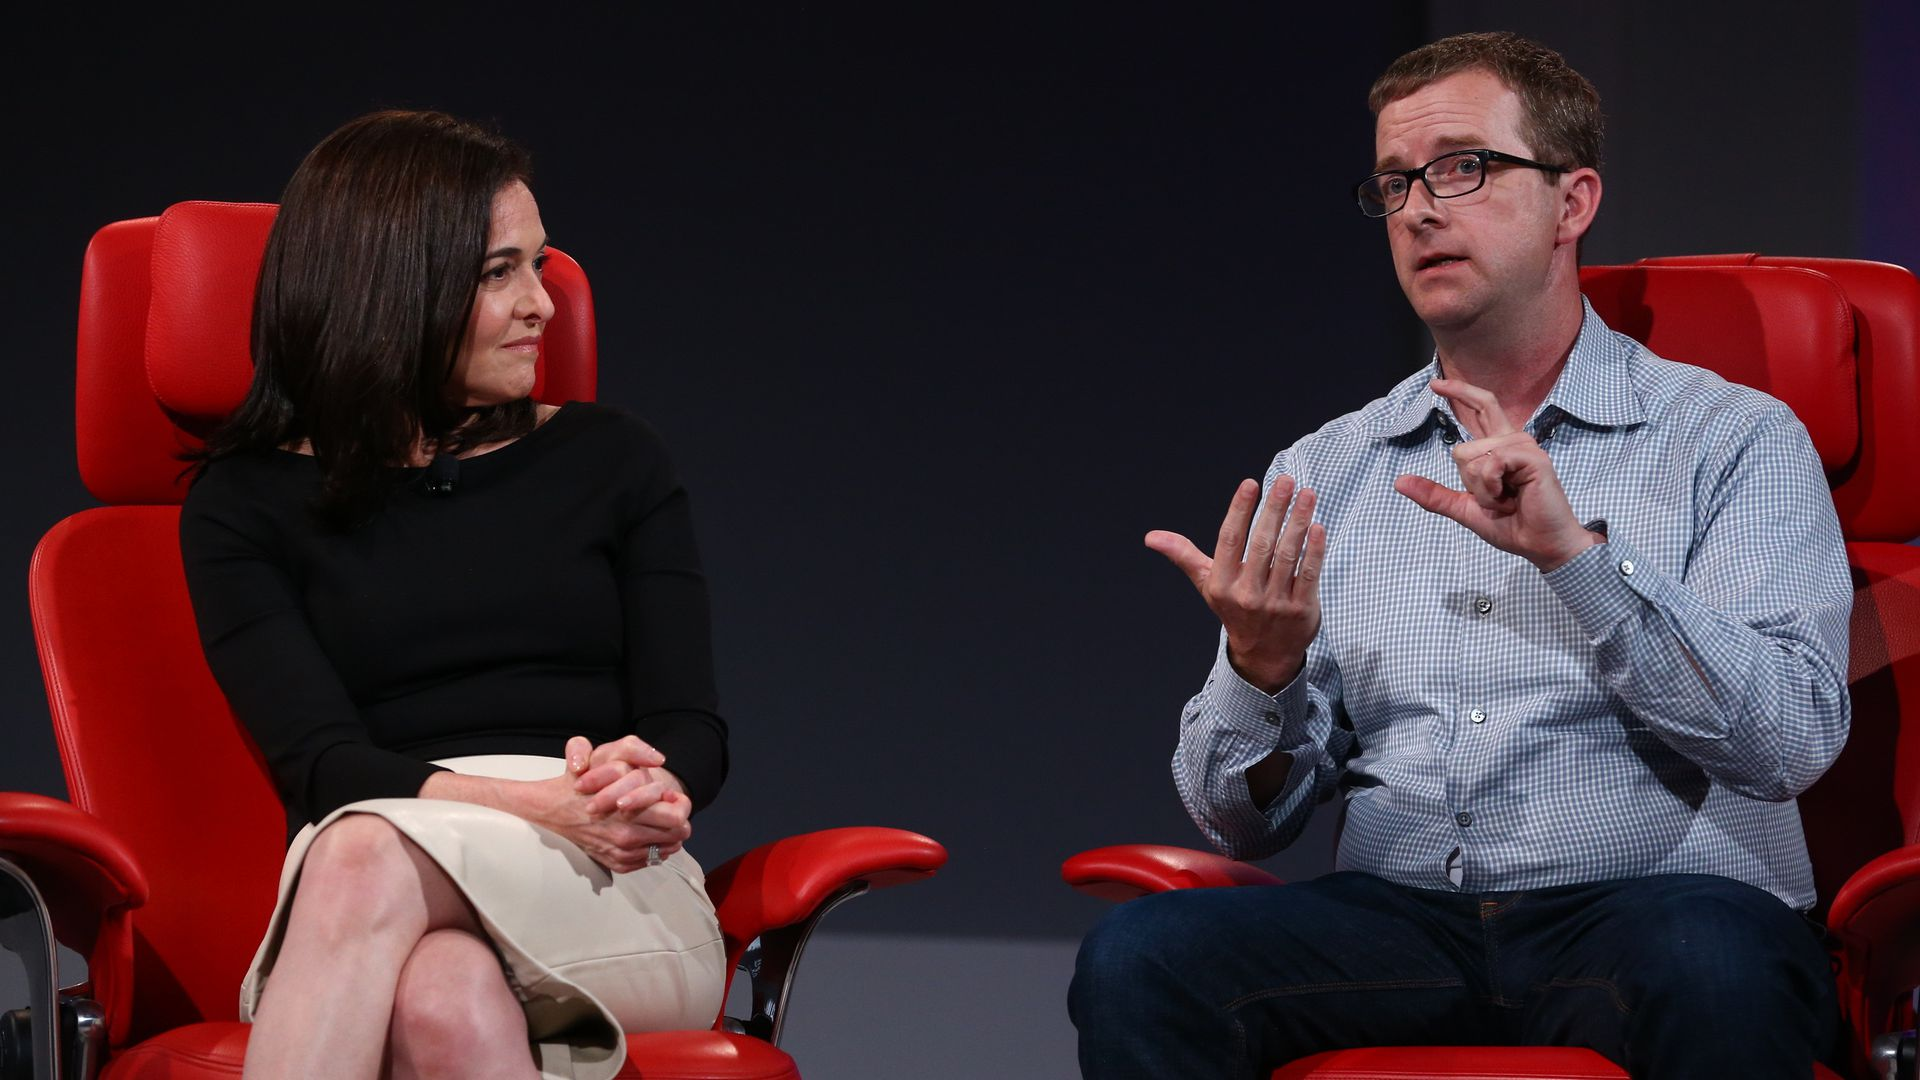 Facebook COO Sheryl Sandberg and CTO Mike Schroepfer speaking at Code Conference